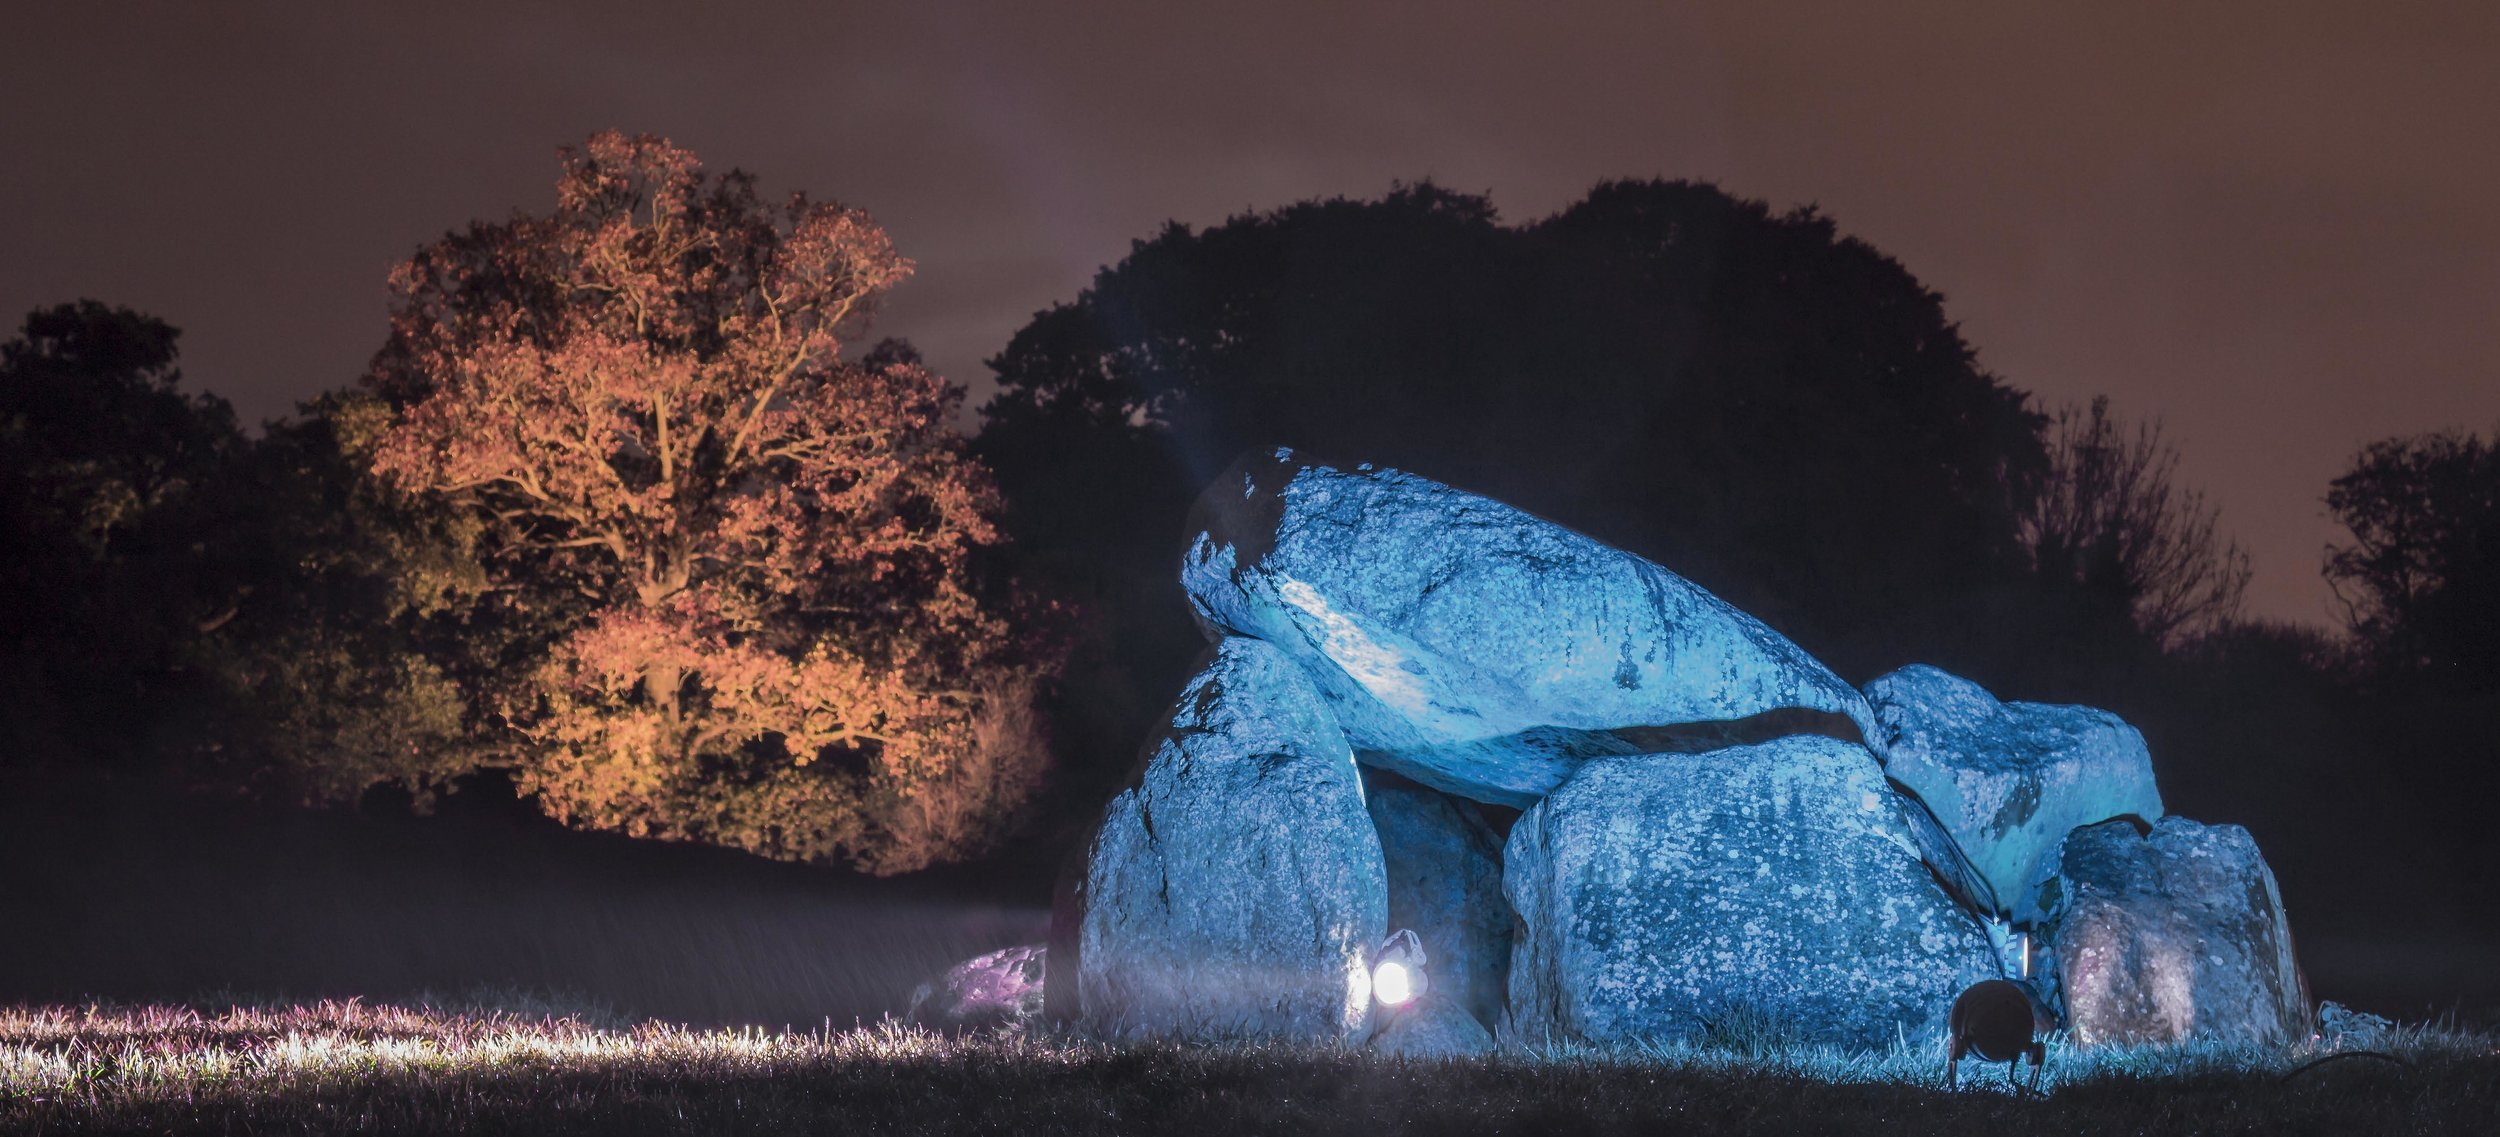 IALD Chase The Night- Giant's Ring